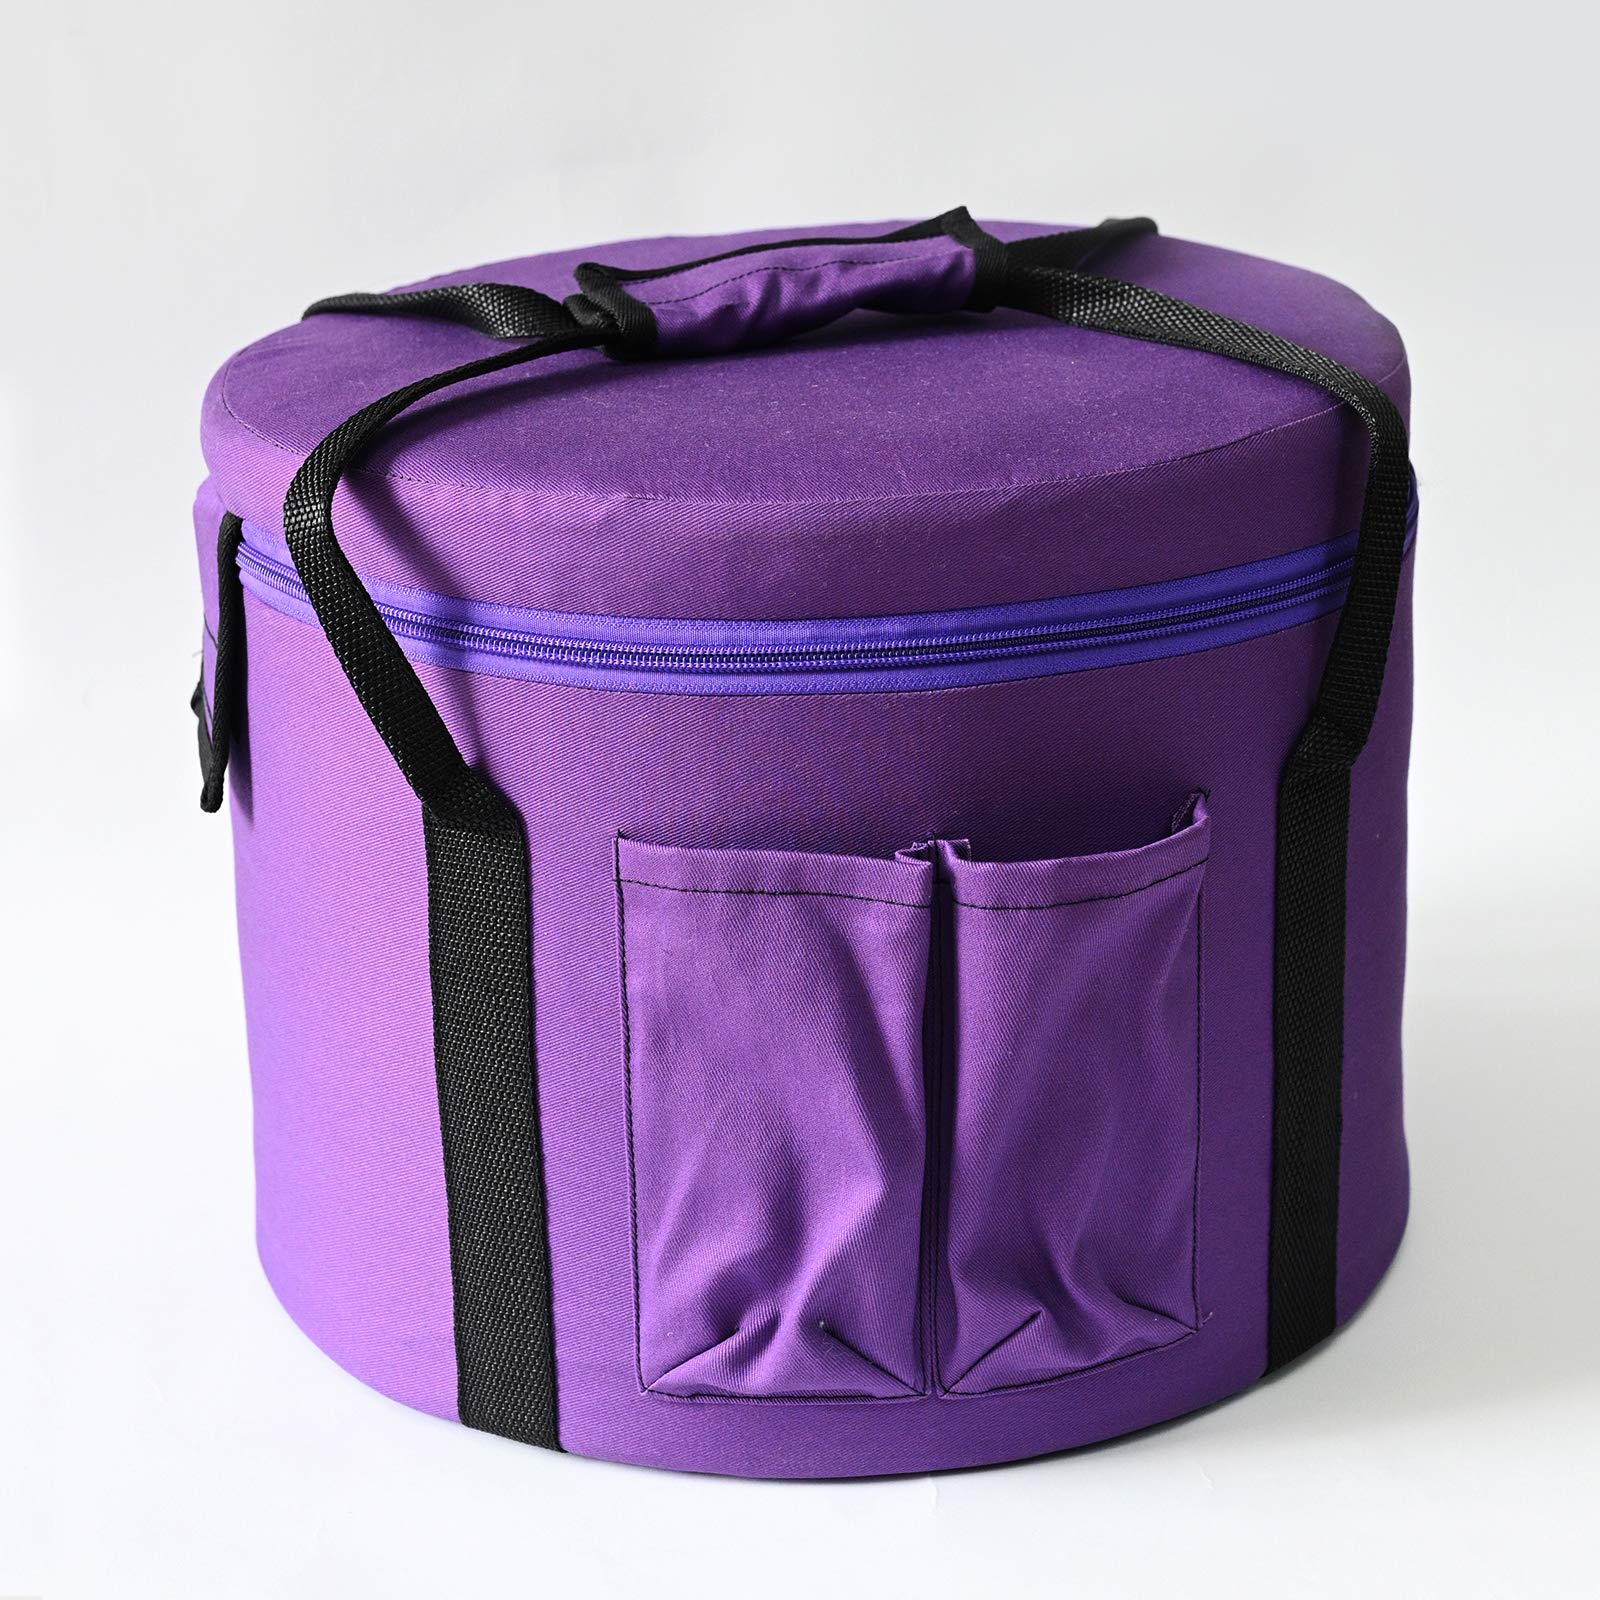 CVNC 10 Inch Purple Color Padded Carrying Case Bag For Putting Frosted Quartz Crystal Singing Bowl